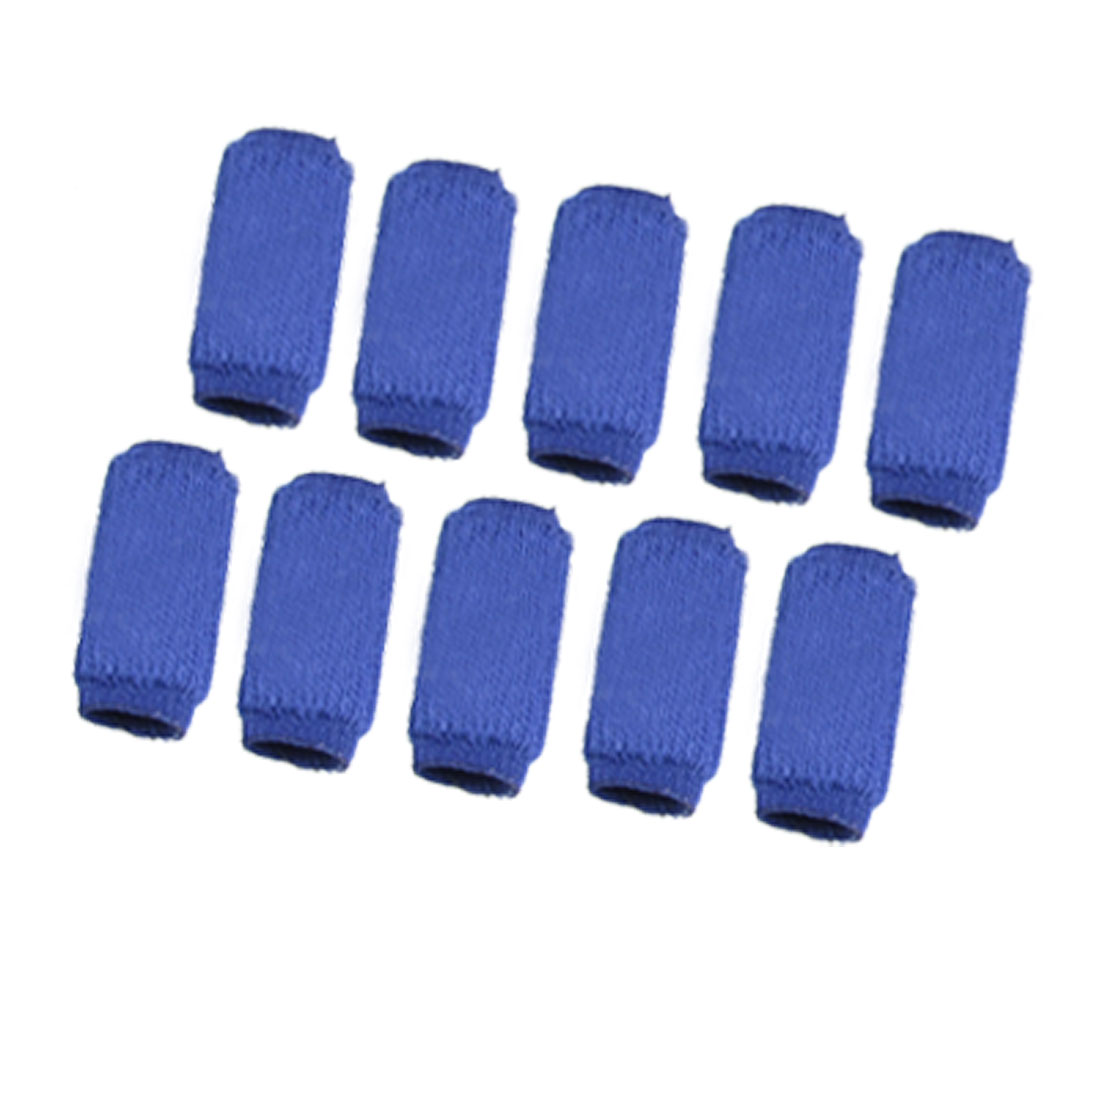 10 Pcs Volleyball Blue Elastic Finger Sleeve Protector